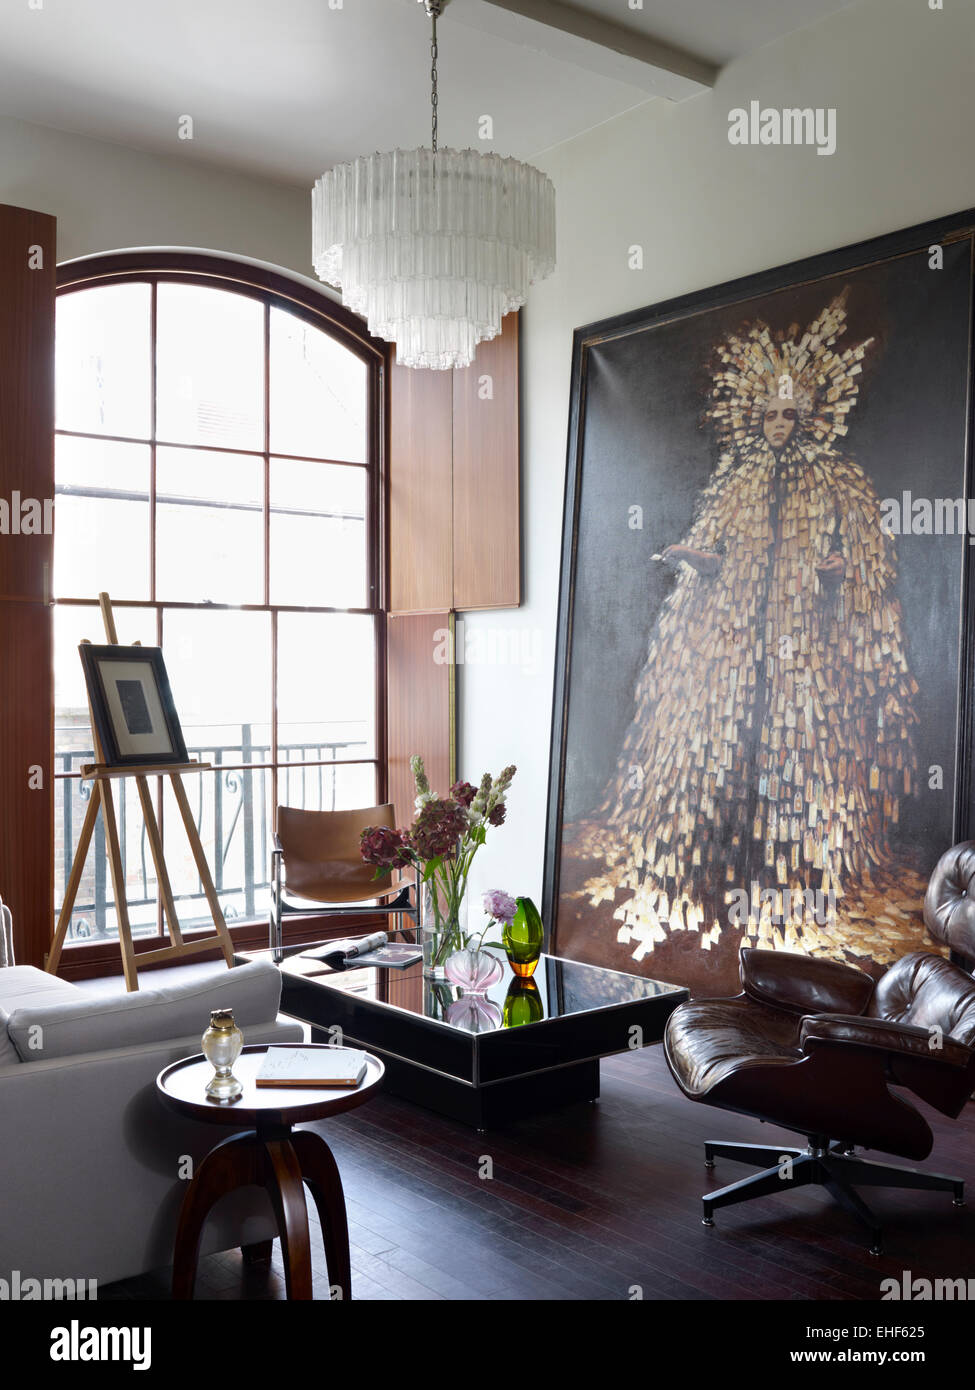 Large artwork in lounge with leather armchair chandelier shutters large artwork in lounge with leather armchair chandelier shutters and wooden floor in kensington court mews home uk aloadofball Image collections